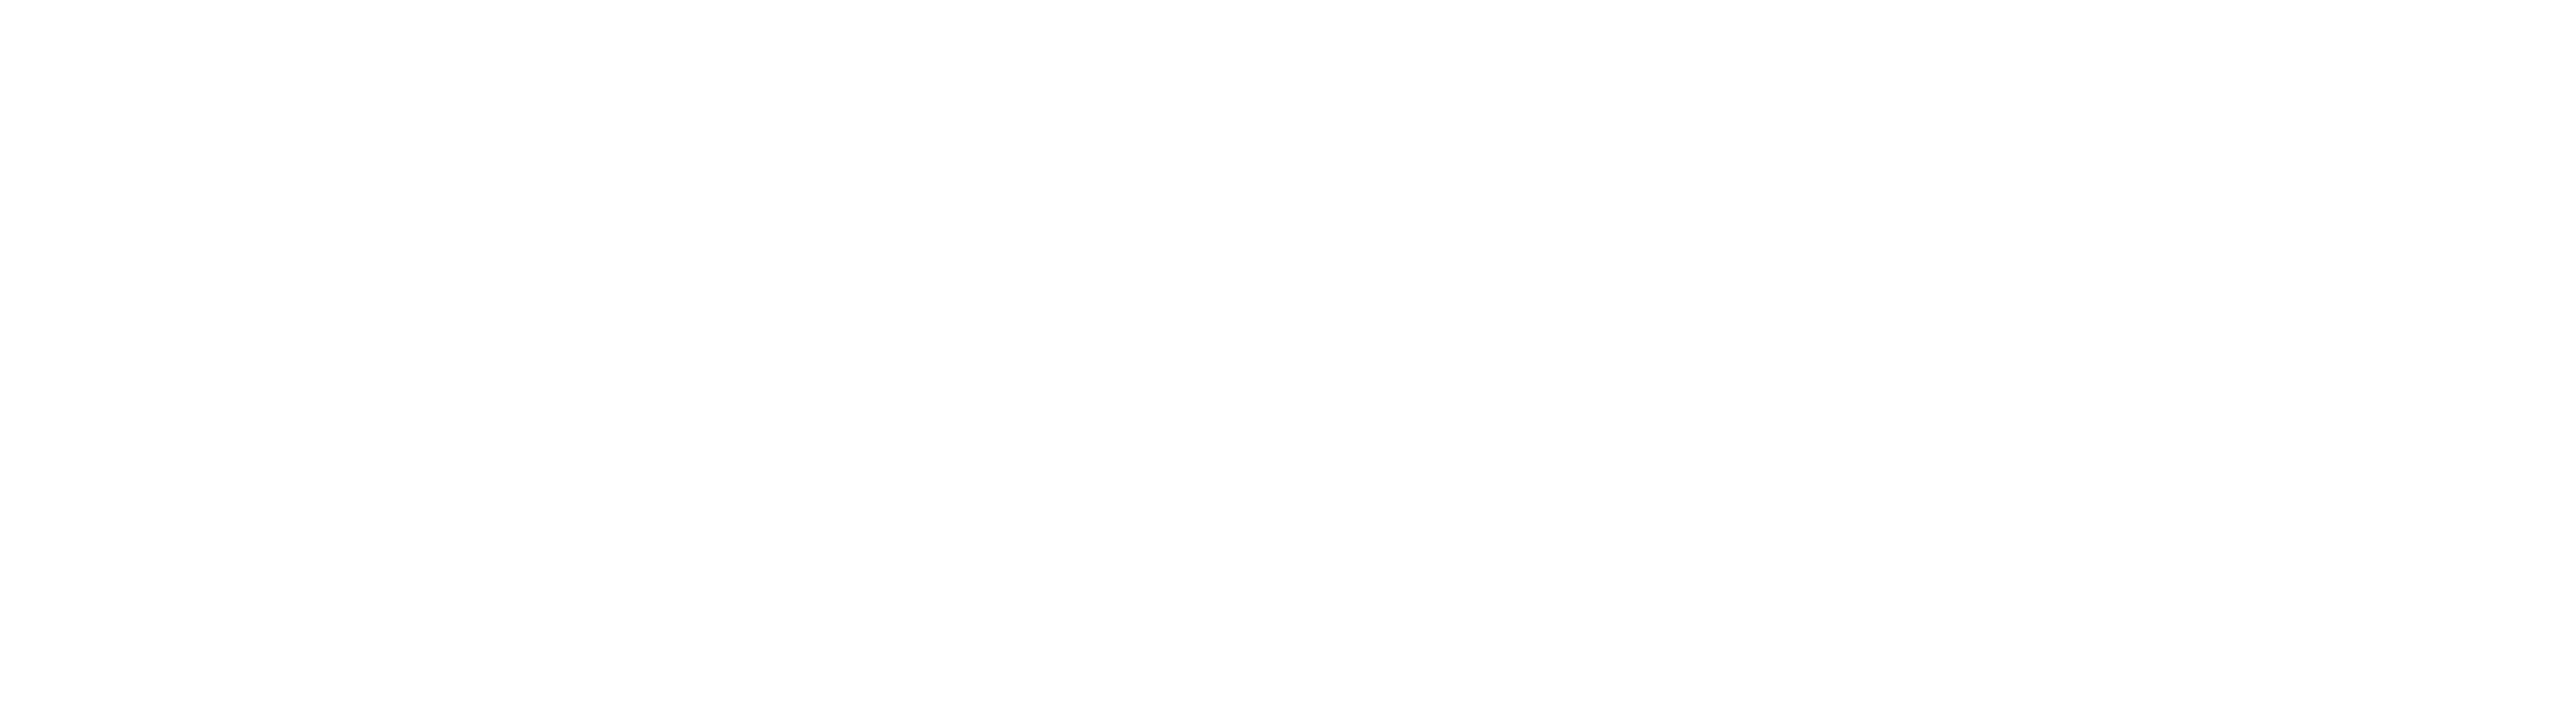 Floral Fantasy Florist & Decorators Ltd. - Flower Delivery in Marine Park, NY